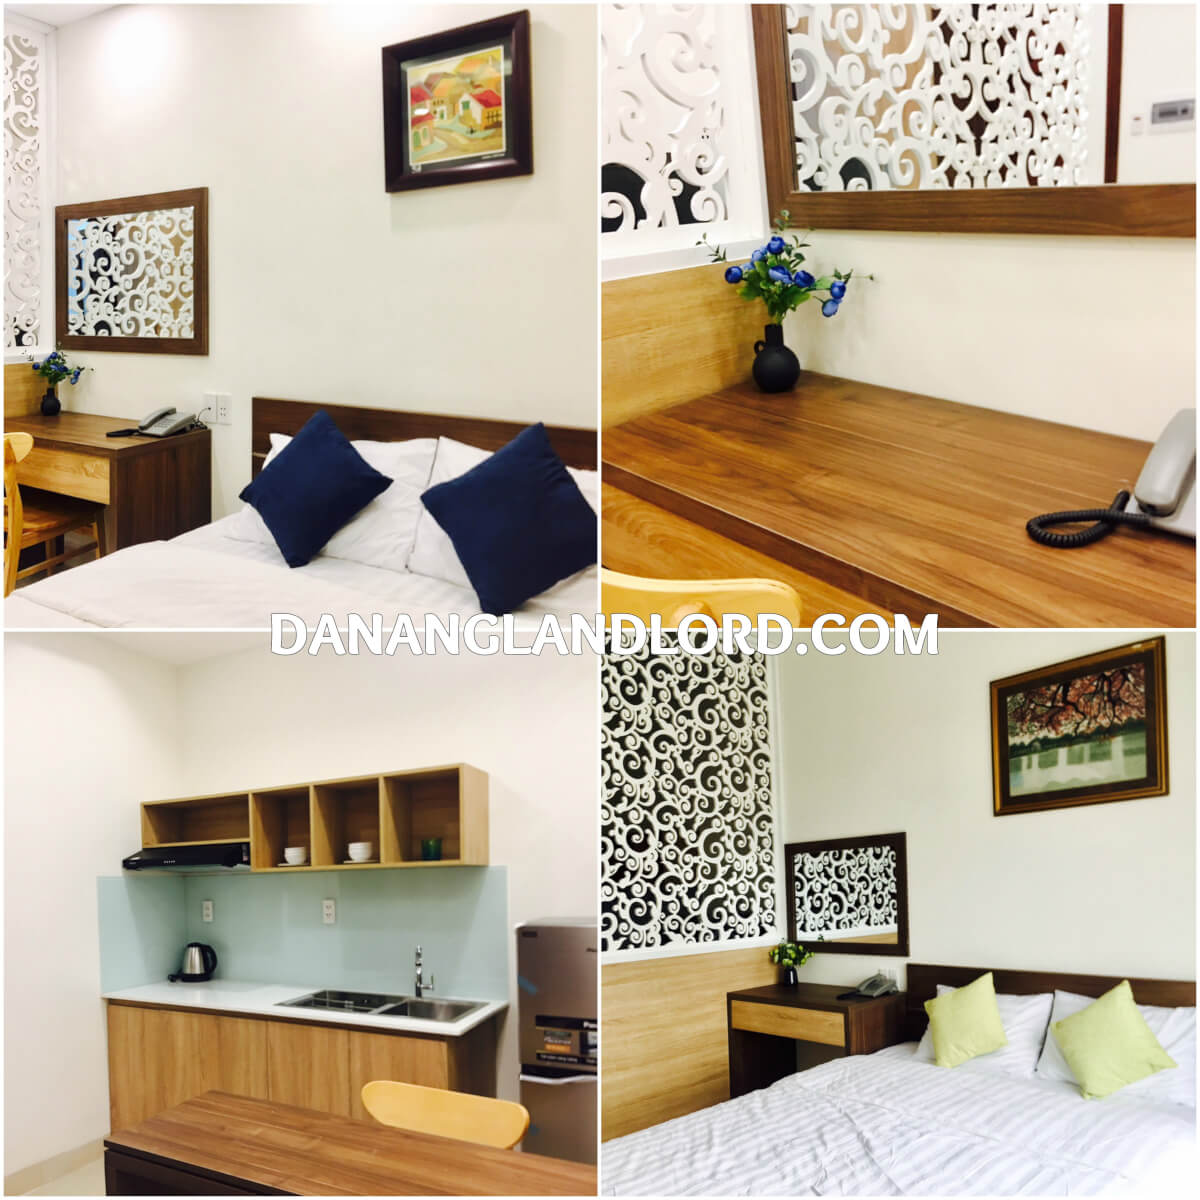 1 Bed Apartment For Rent: Studio 1 Bedroom Apartment For Rent, Pham Van Dong Beach